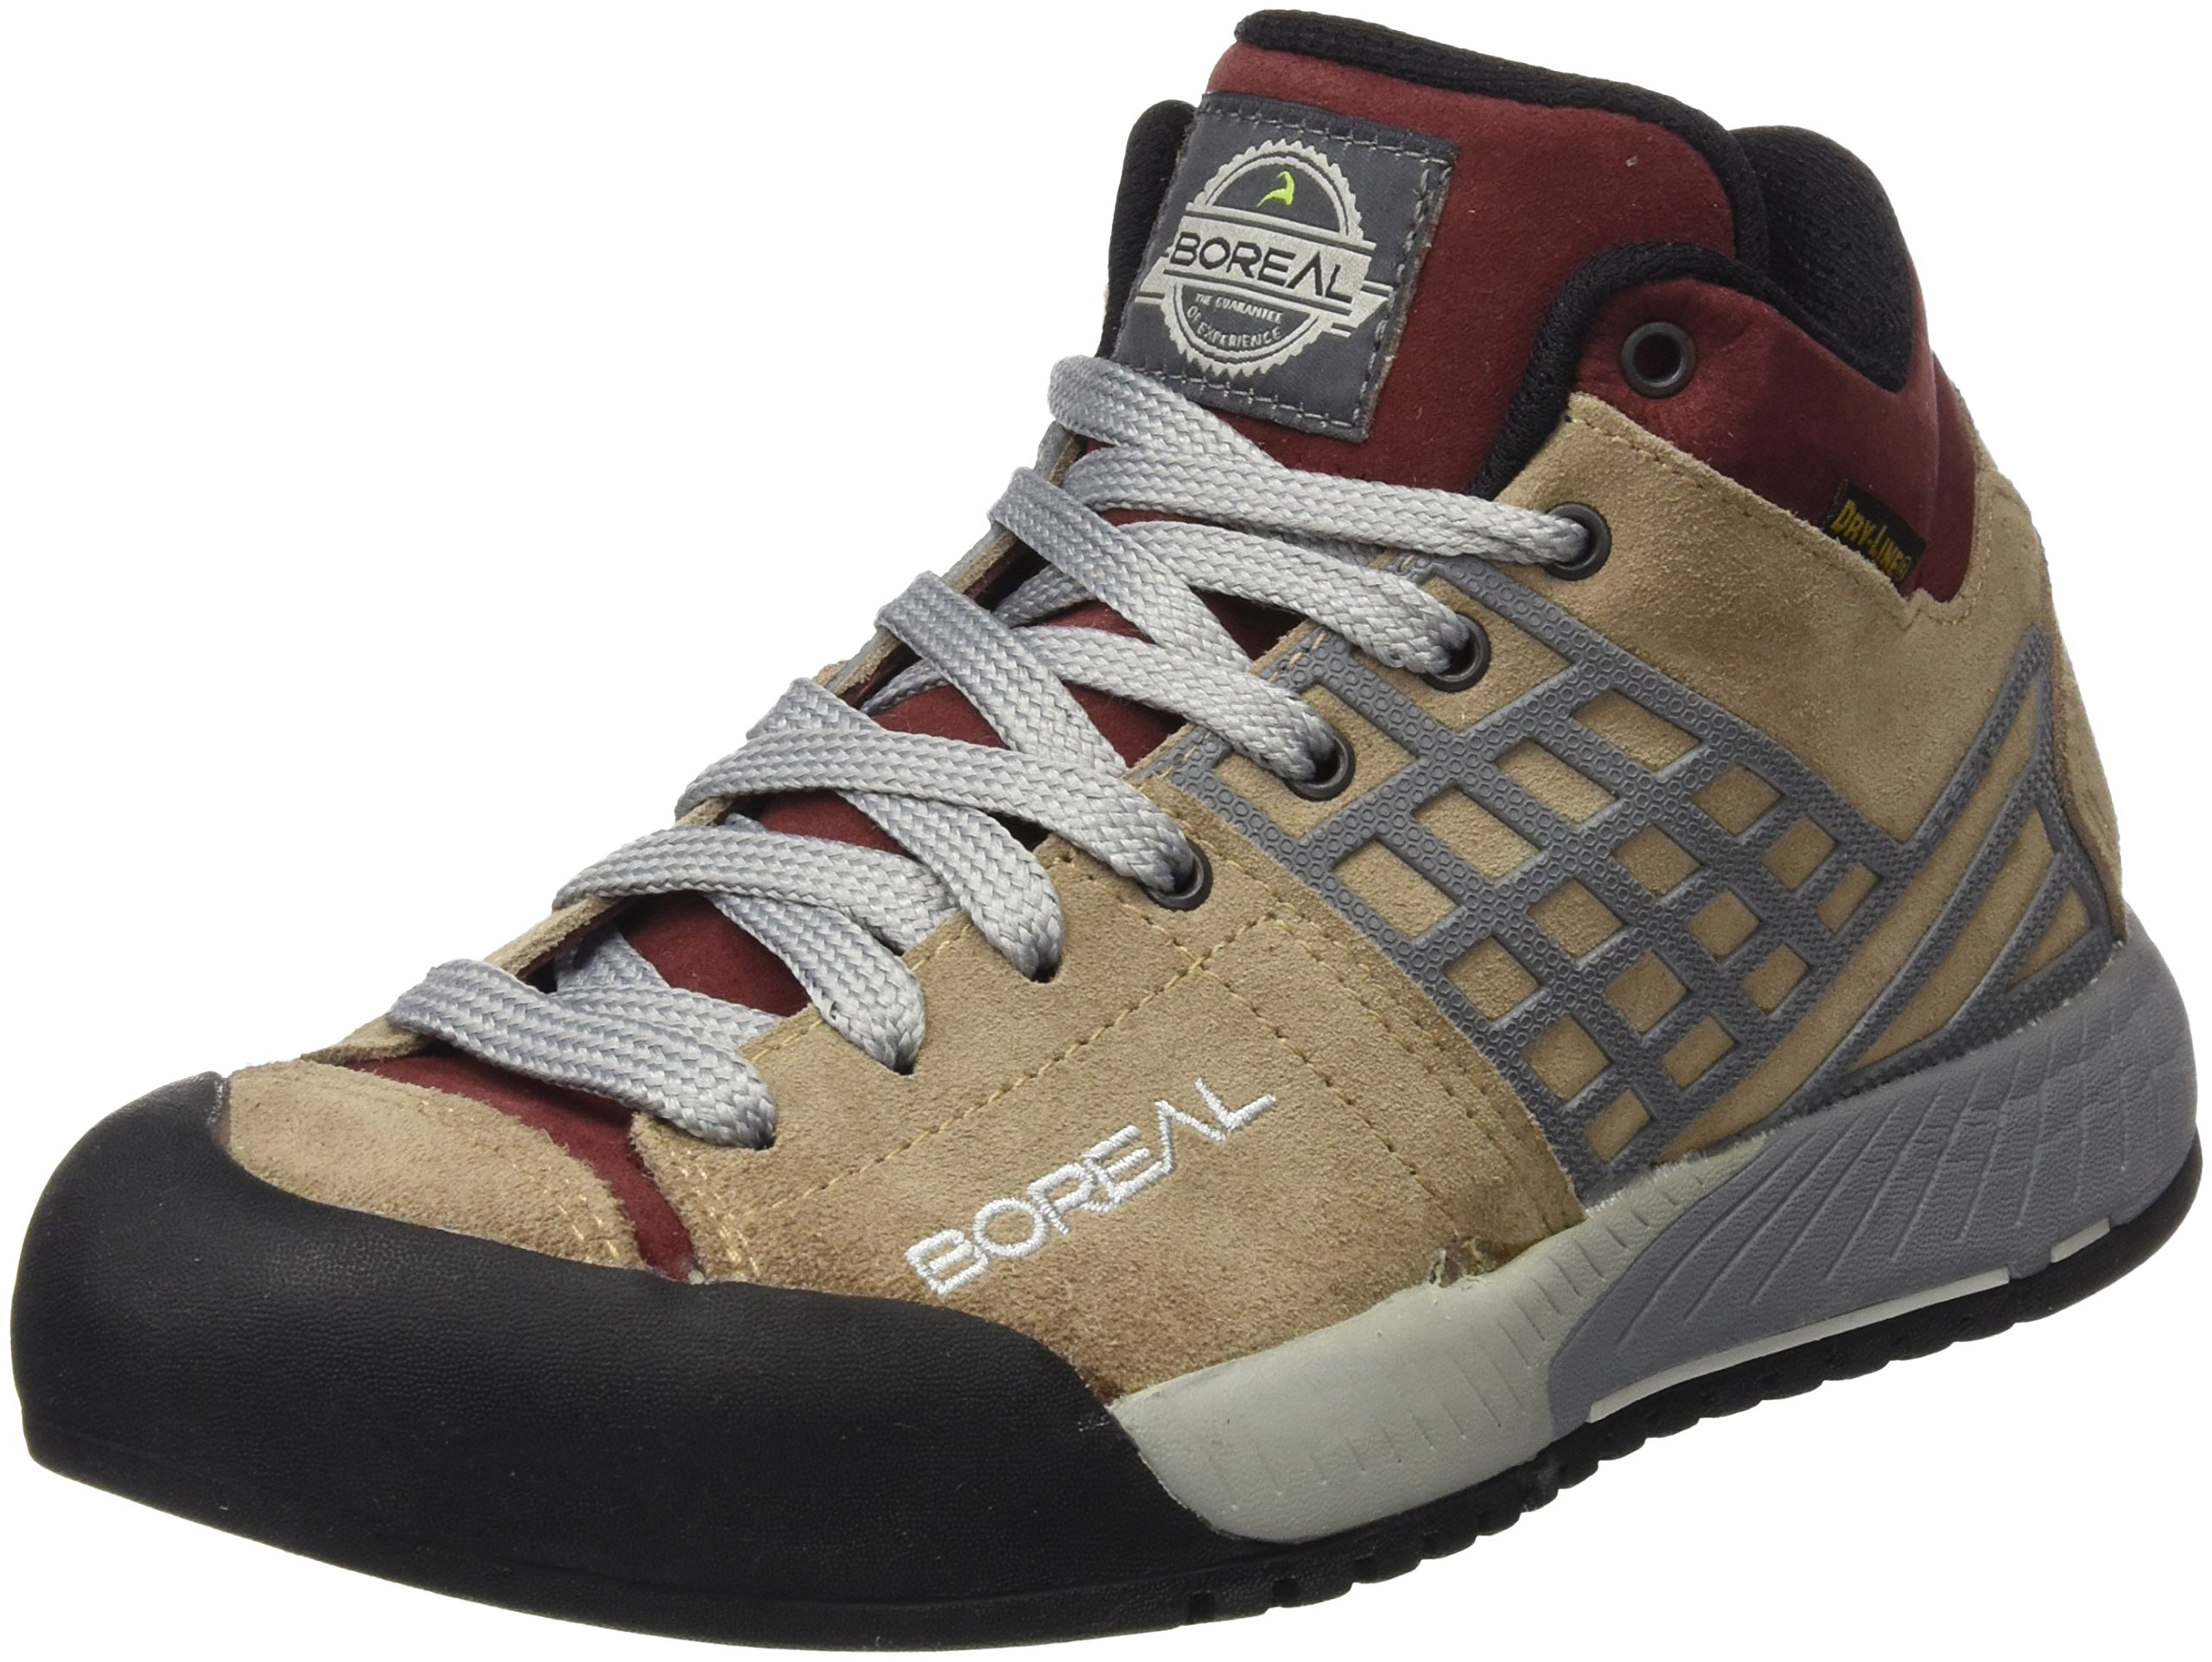 Boreal Athletic Shoes Womens Bamba Mid Lace Travel W 7.5 Beige 30453